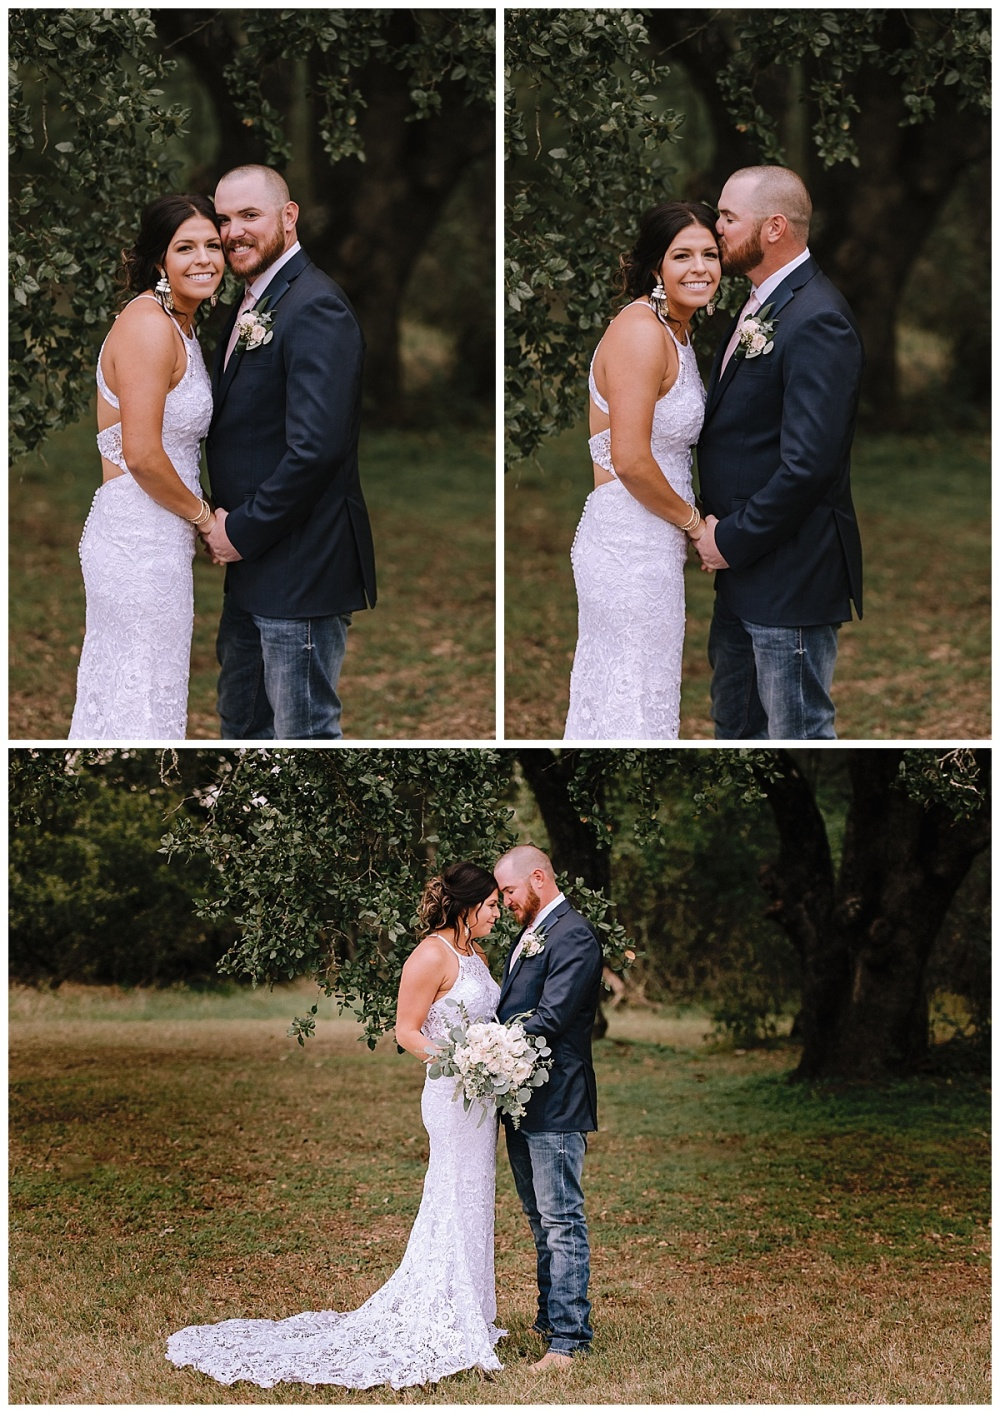 South-Texas-Wedding-Photographer-Rose-Gold-and-Navy-Theme-LaVernia-Bride-Groom-Carly-Barton-Photography_0078